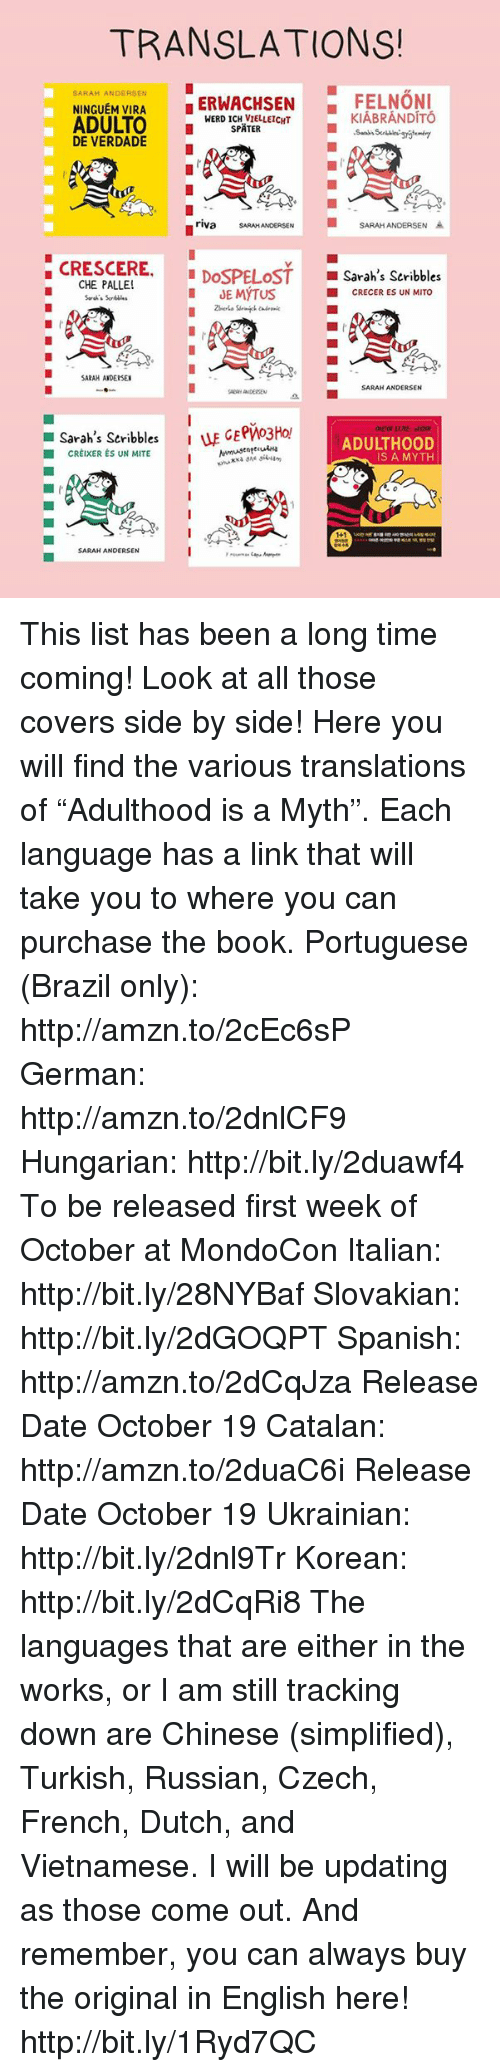 """catalan: TRANSLATIONS!  SARAH ANDERSEN  I ERWACHSEN  FELNONI  NINGUEM VIRA  ADULTO  KIABRANDITO  SPATER  DE VERDADE  SARAH ANDERSEN A  riva  SARAH ANDERSE  CRESCERE  CHE PALLE  DOSPELOST  Sarah's Scribbles  cRECERES UN MITO  JE MYTUS  Seek's  SARAH ANDERSEN  SARAH ANDERSEN  Sarah's Seribbles  i uE GE  ADULTHOOD  CREIxER ES UN MITE  IS A MYTH  SARAH ANDERSEN This list has been a long time coming! Look at all those covers side by side! Here you will find the various translations of """"Adulthood is a Myth"""". Each language has a link that will take you to where you can purchase the book.  Portuguese (Brazil only): http://amzn.to/2cEc6sP  German: http://amzn.to/2dnlCF9  Hungarian: http://bit.ly/2duawf4 To be released first week of October at MondoCon  Italian: http://bit.ly/28NYBaf  Slovakian: http://bit.ly/2dGOQPT  Spanish: http://amzn.to/2dCqJza Release Date October 19  Catalan: http://amzn.to/2duaC6i Release Date October 19  Ukrainian: http://bit.ly/2dnl9Tr  Korean: http://bit.ly/2dCqRi8  The languages that are either in the works, or I am still tracking down are Chinese (simplified), Turkish, Russian, Czech, French, Dutch, and Vietnamese. I will be updating as those come out. And remember, you can always buy the original in English here! http://bit.ly/1Ryd7QC"""